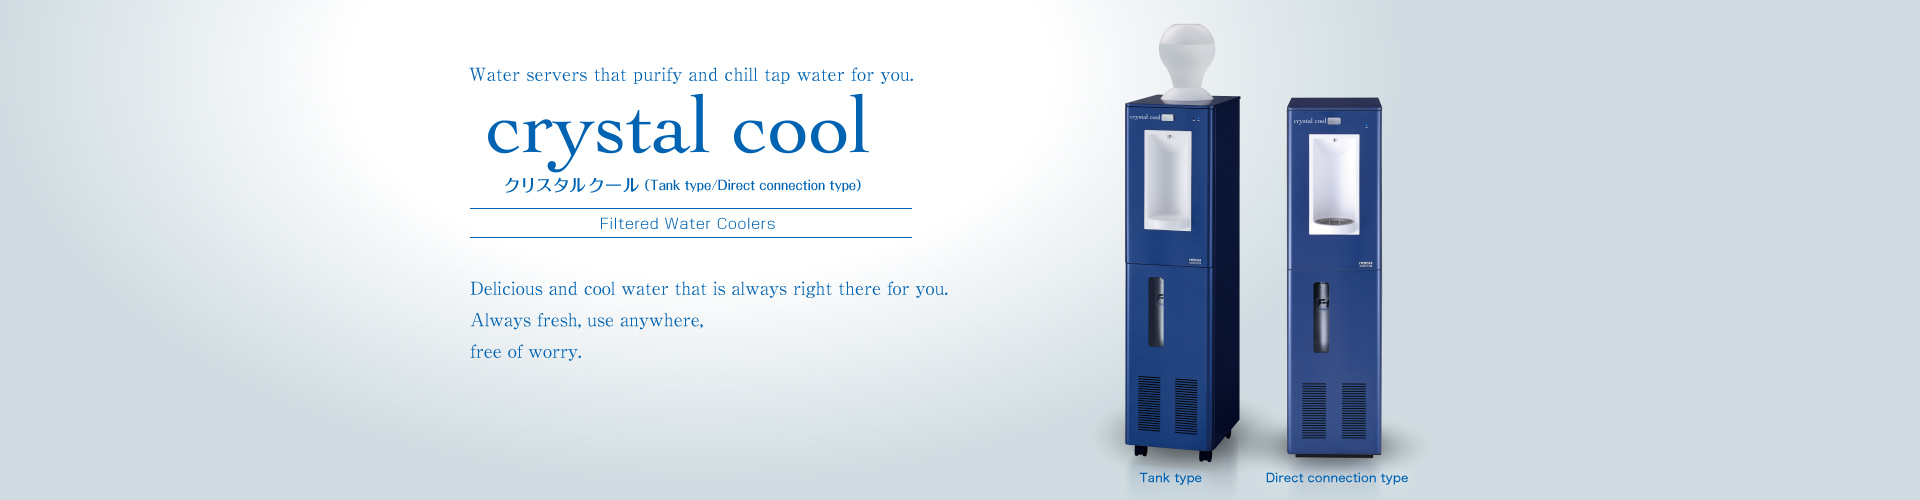 Crystal Cool 2 Filtered Water Coolers